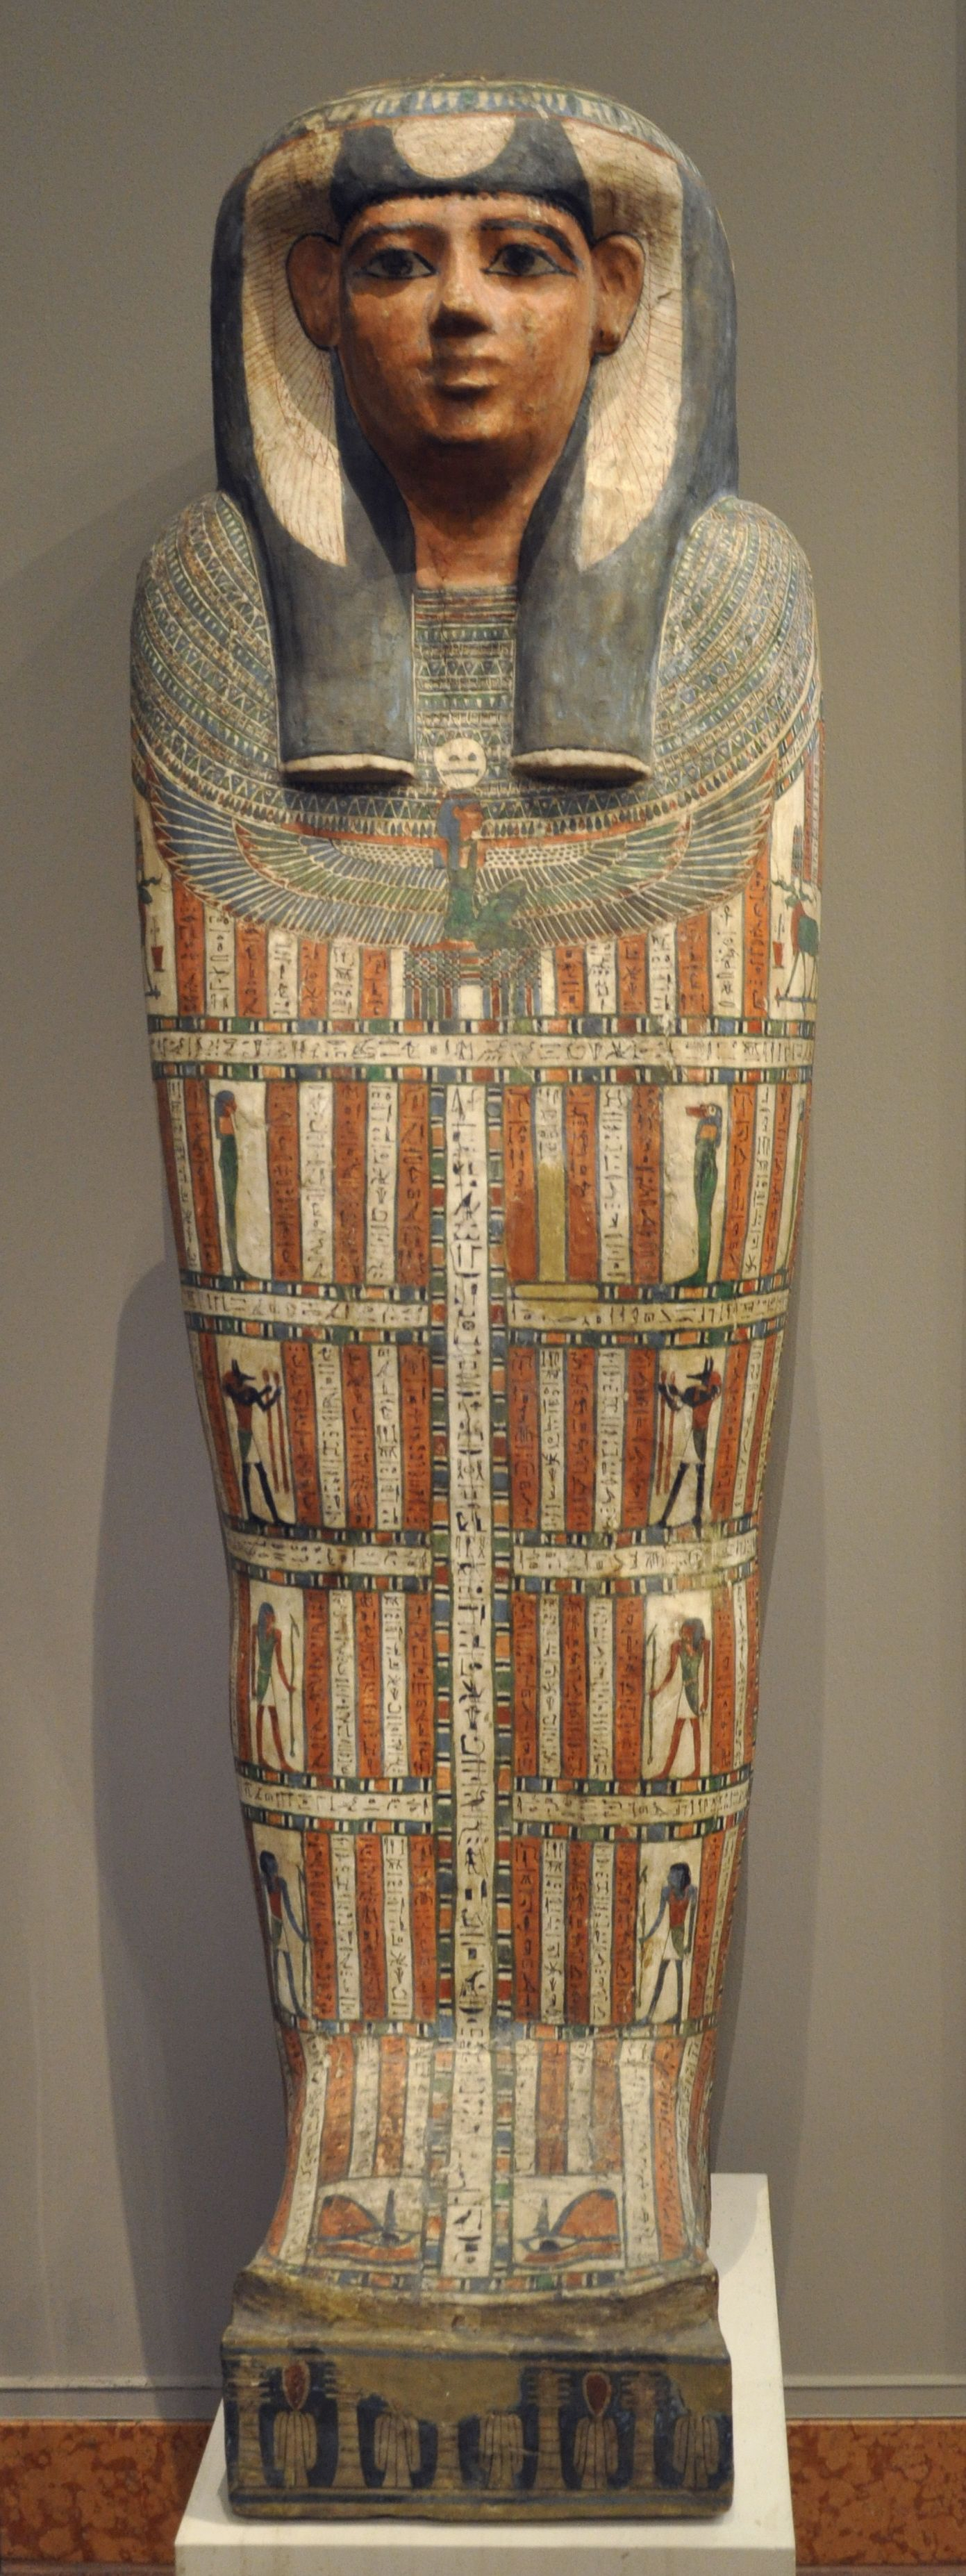 the sarcophagus 5 synonyms of sarcophagus from the merriam-webster thesaurus, plus 8 related words, definitions, and antonyms find another word for sarcophagus a boxlike container for holding a dead body synonyms: bier, box, casket.